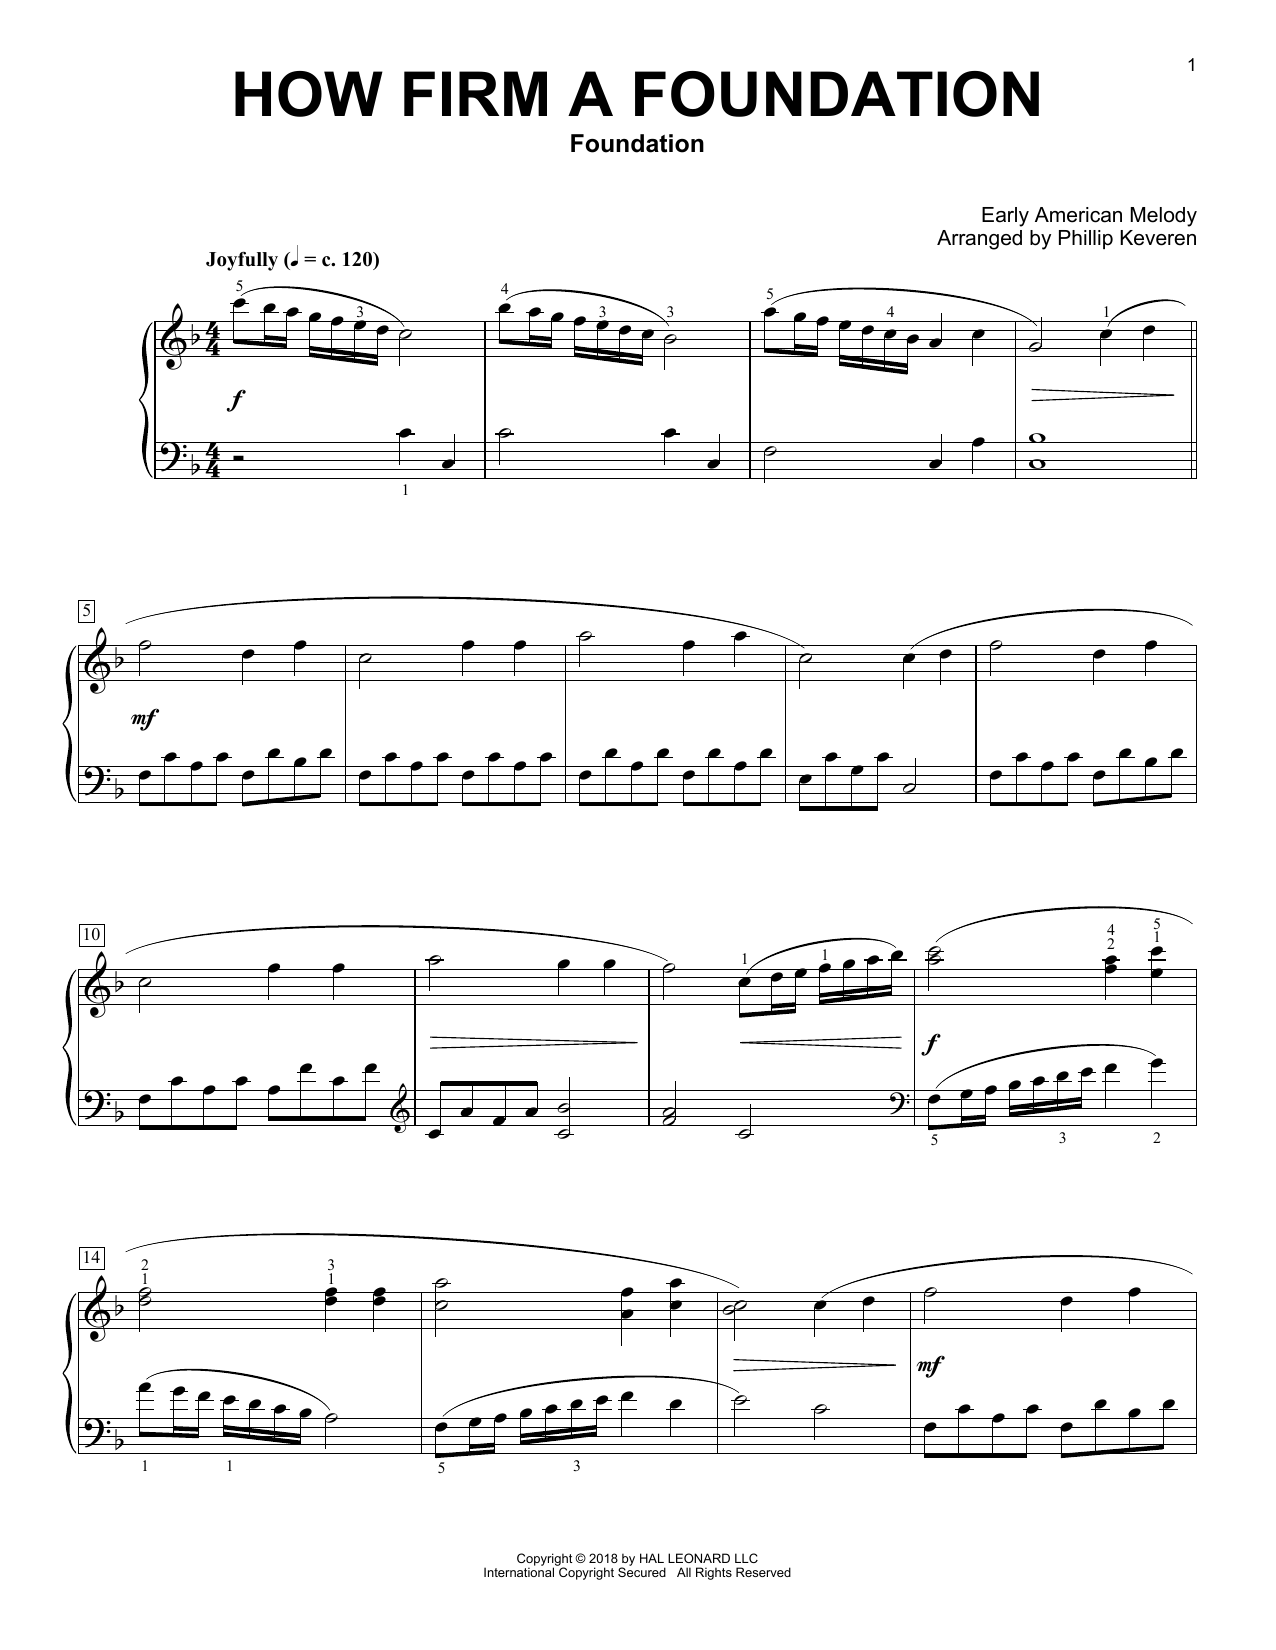 How Firm a Foundation [Classical version] (arr. Phillip Keveren) (Piano Solo)